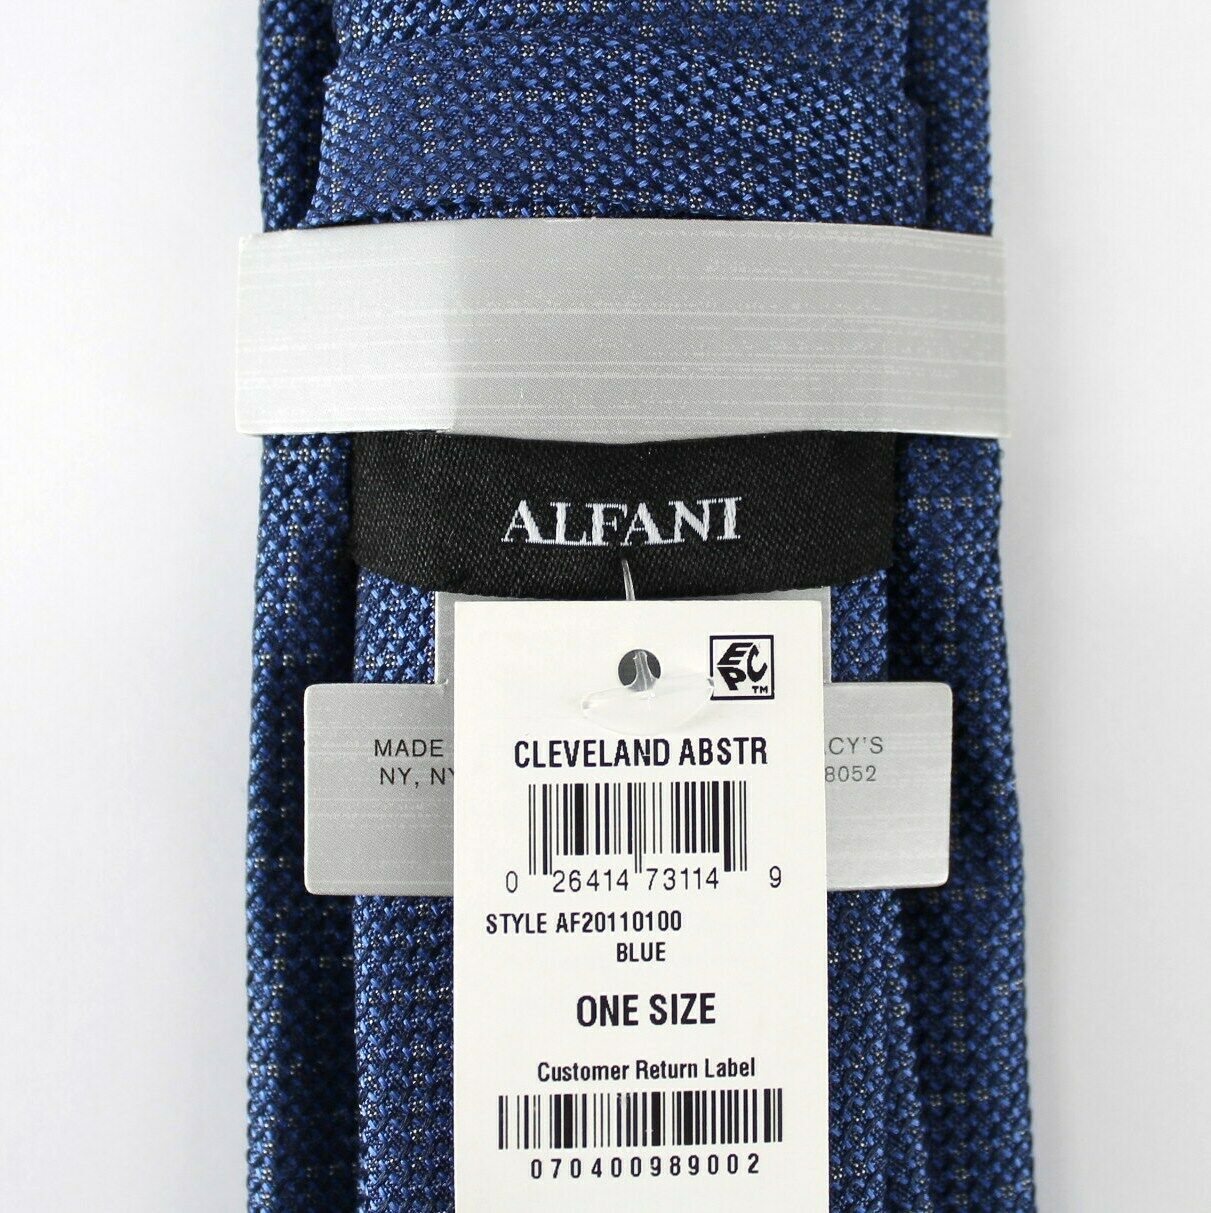 Alfani Neck Tie Blue Cleveland Abstract 100% Silk Slim Skinny Mens New image 3